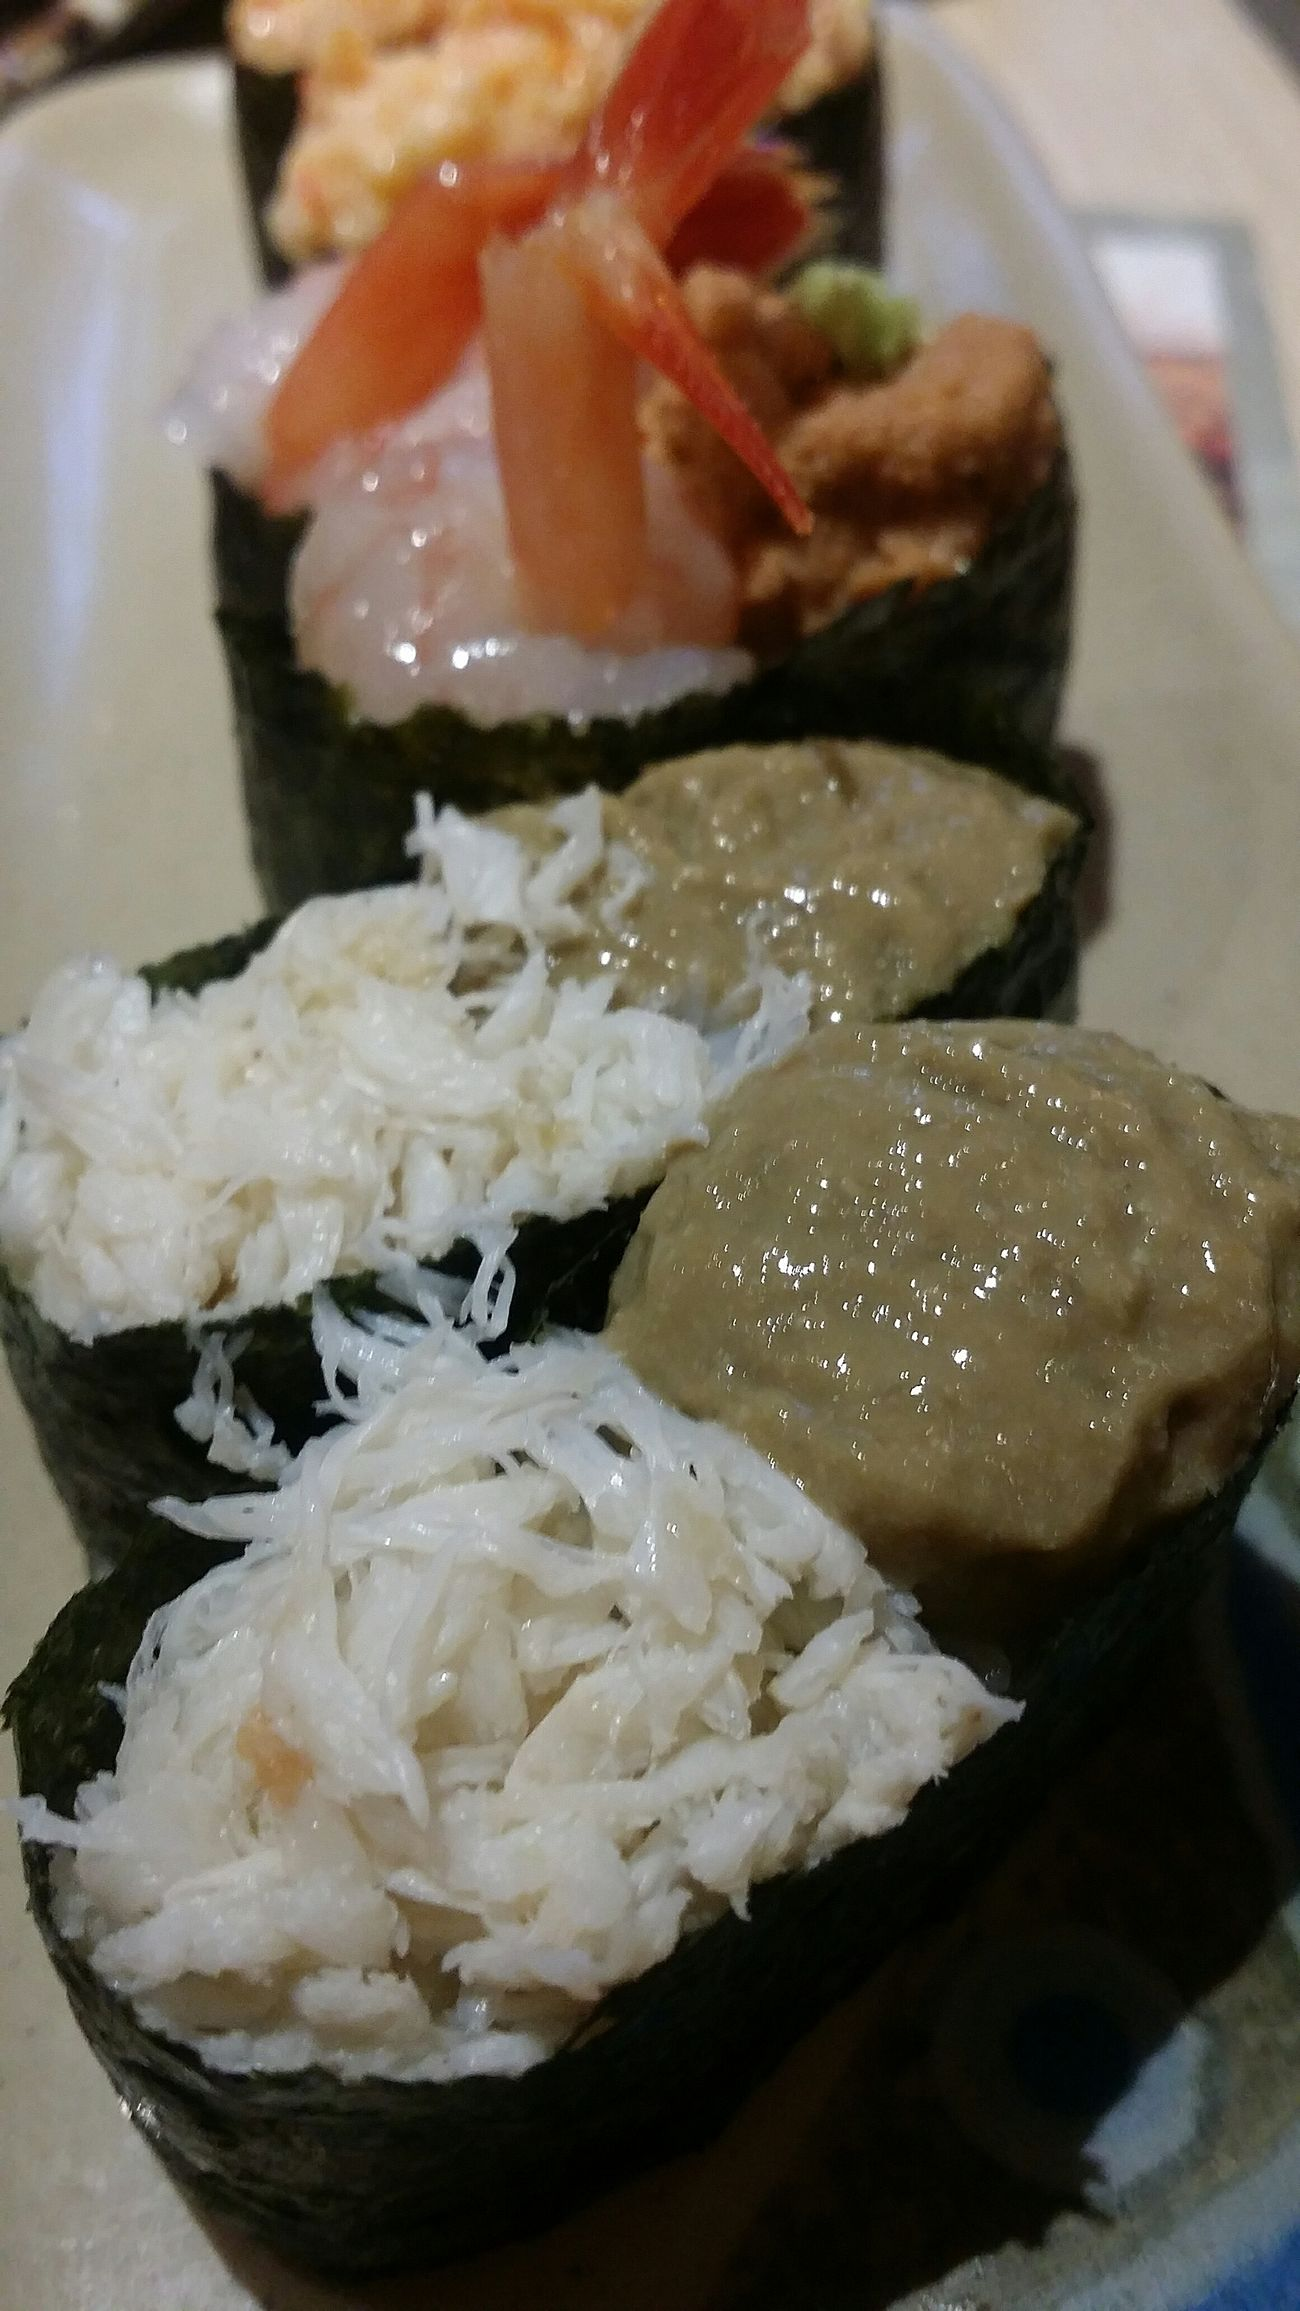 Kani Miso Crab Miso Crab Innards Sushi Itacho Sushi Food Foodphotography Japanese Food Singapore